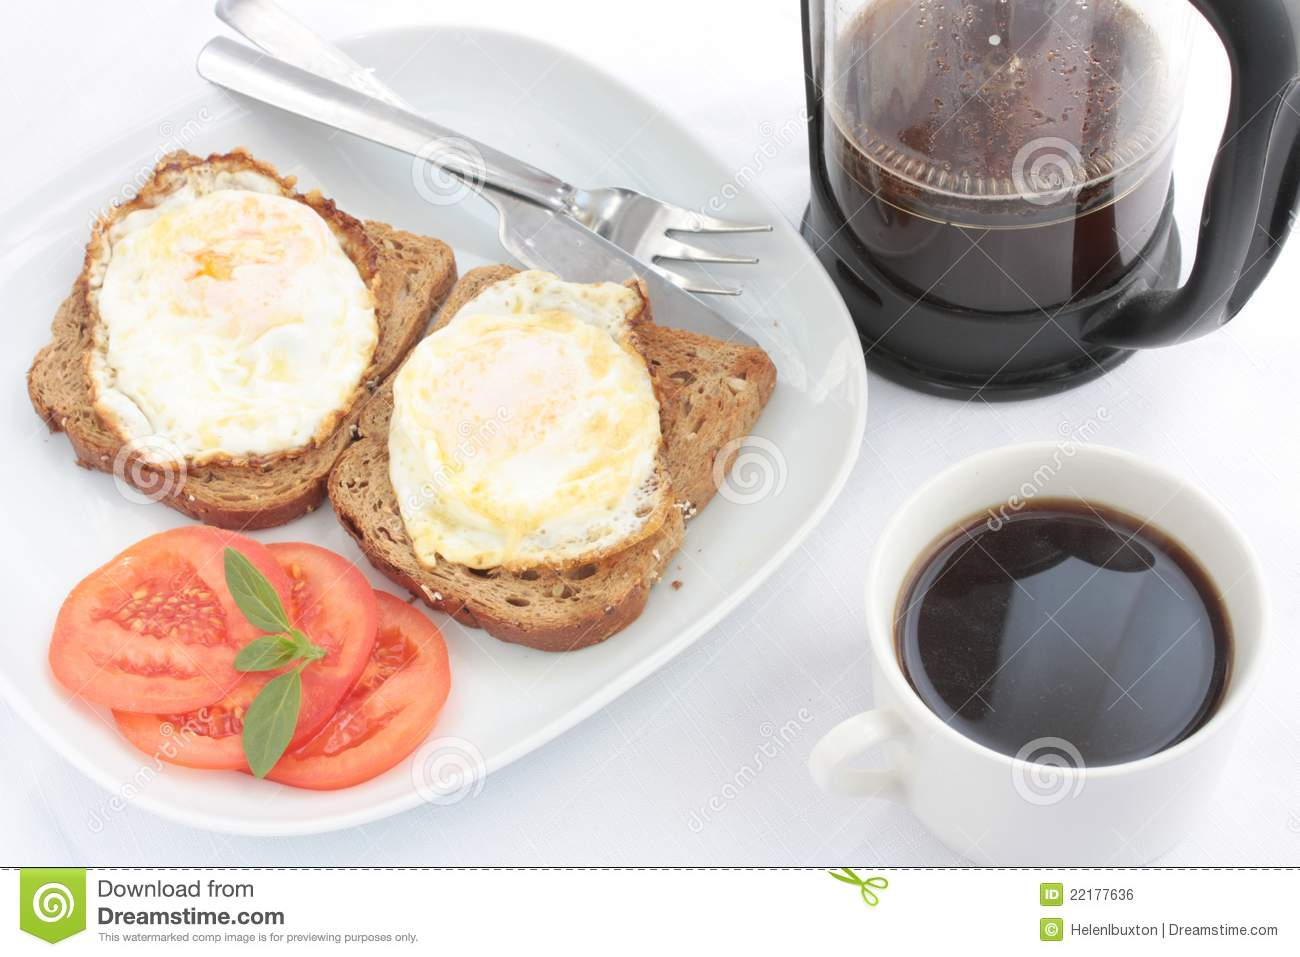 Breakfast of eggs on toast with coffee